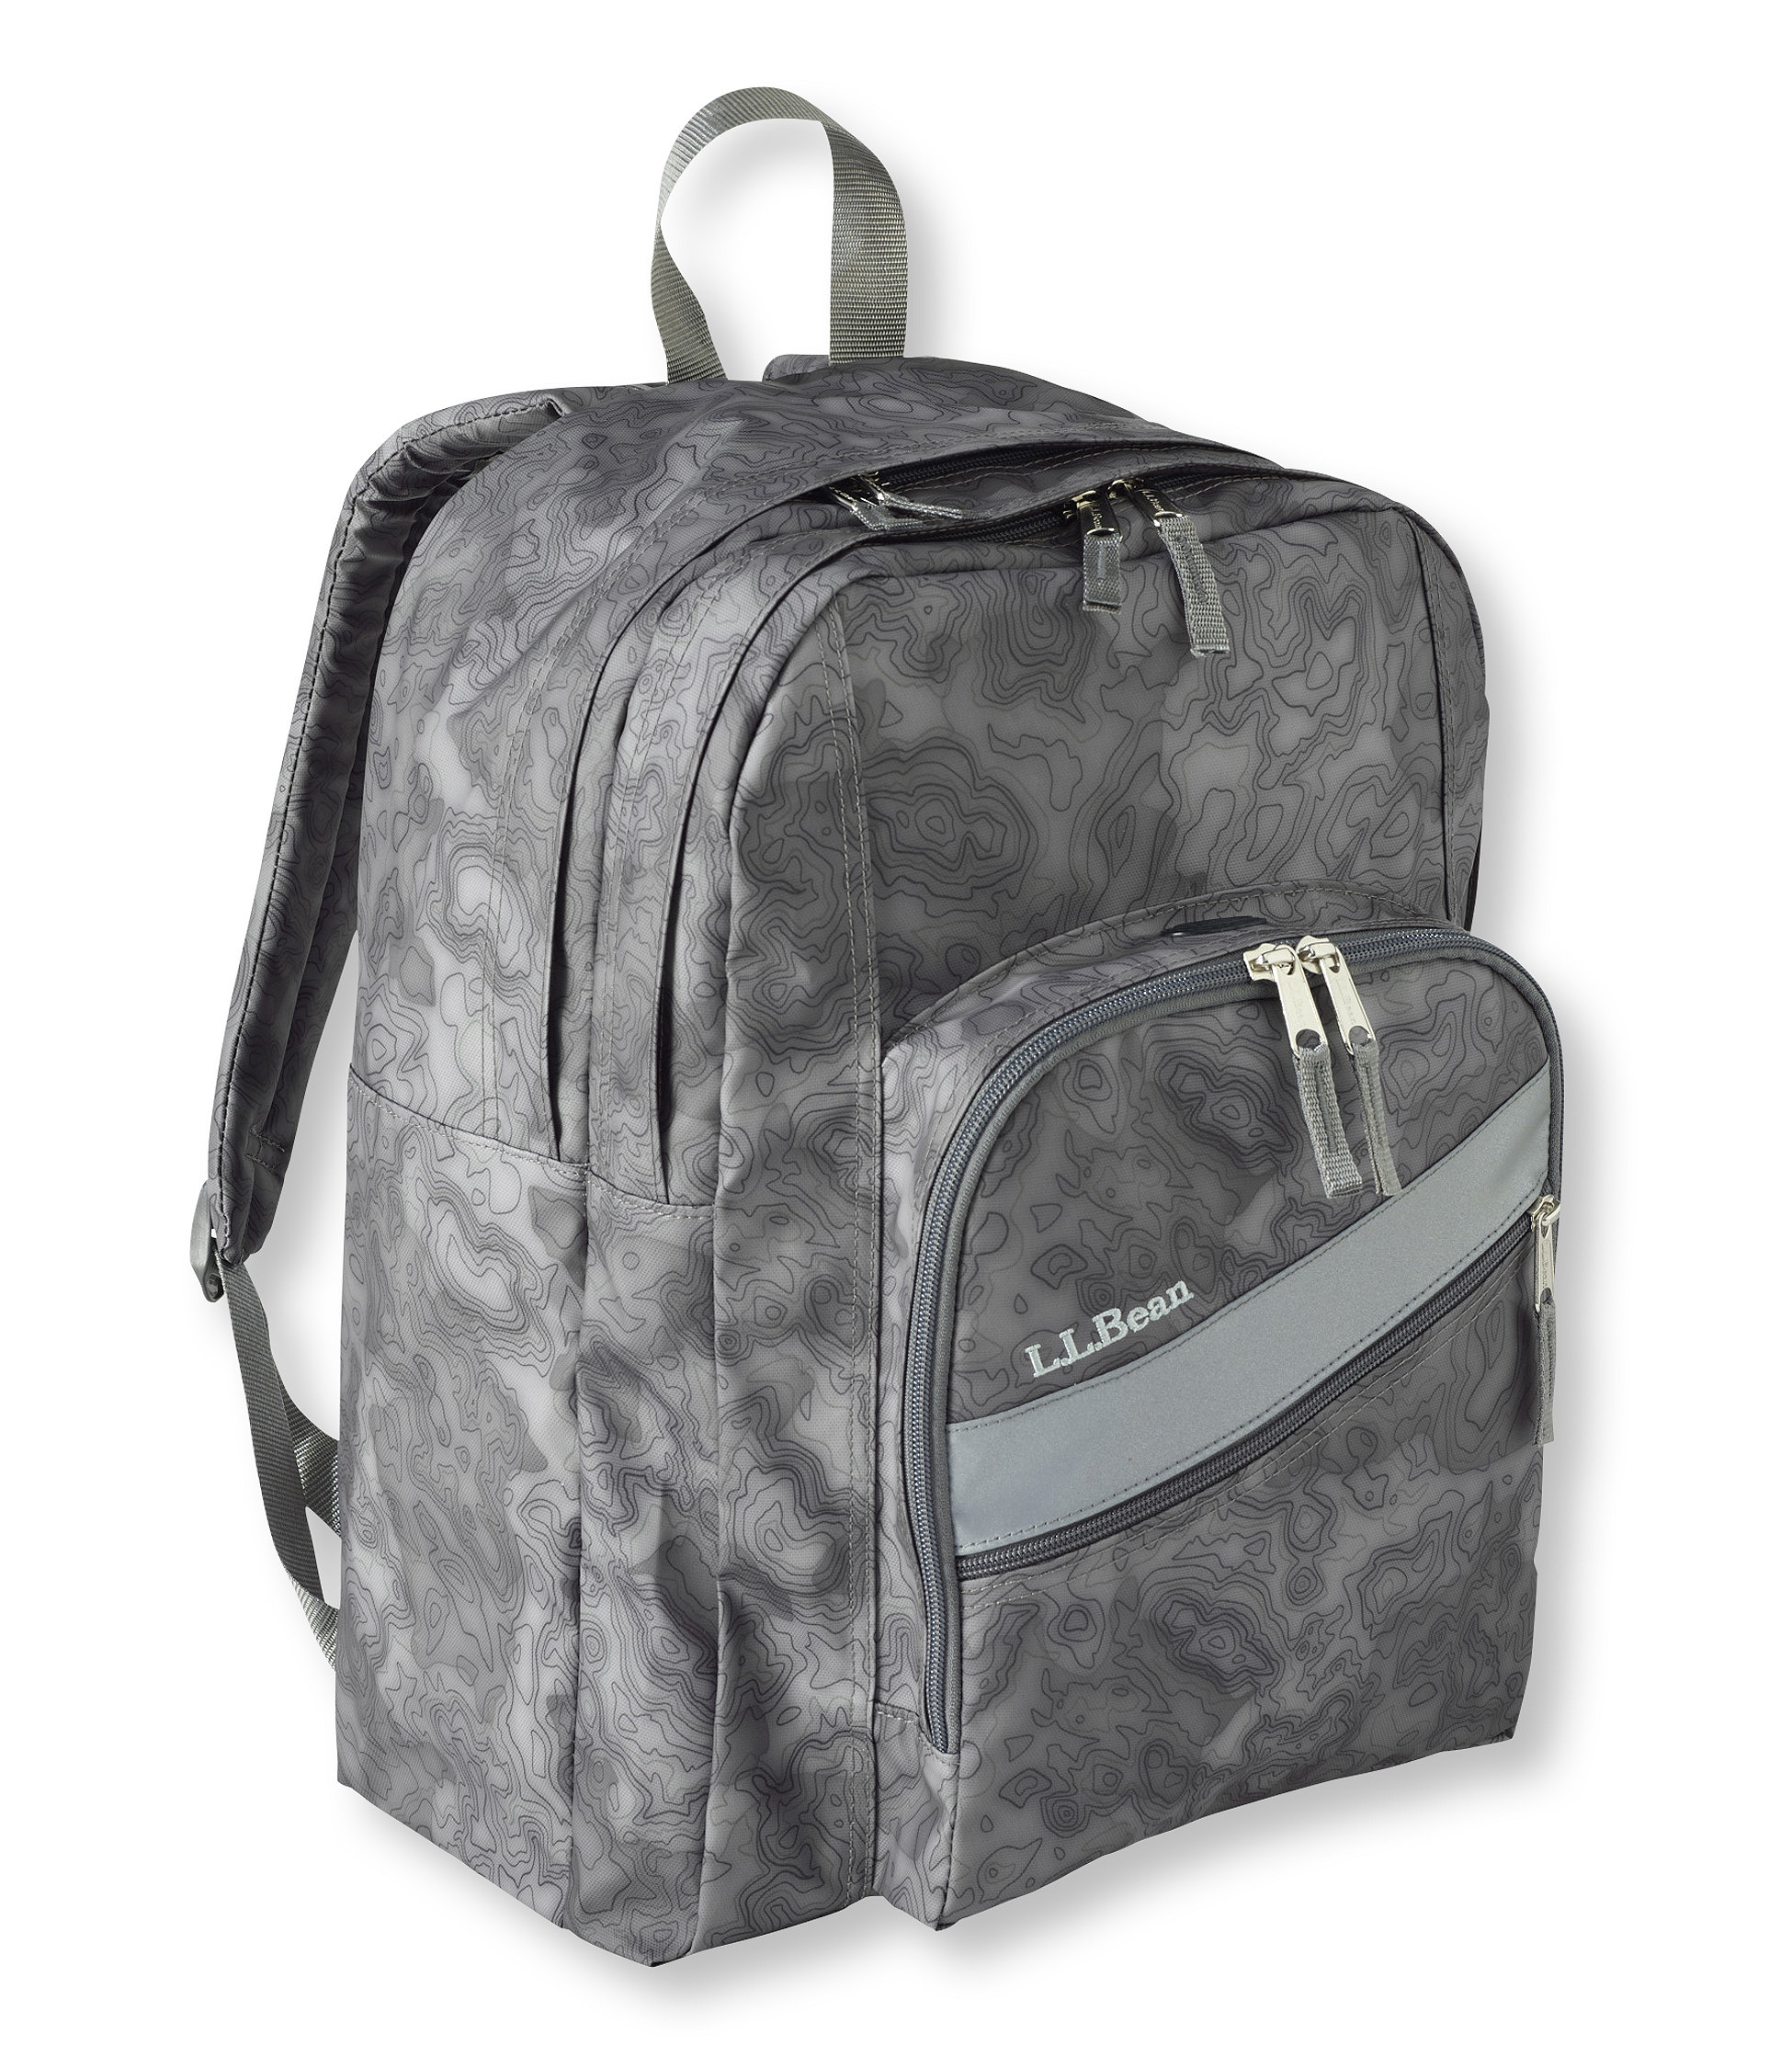 L.L.Bean Deluxe Book Pack, Coated